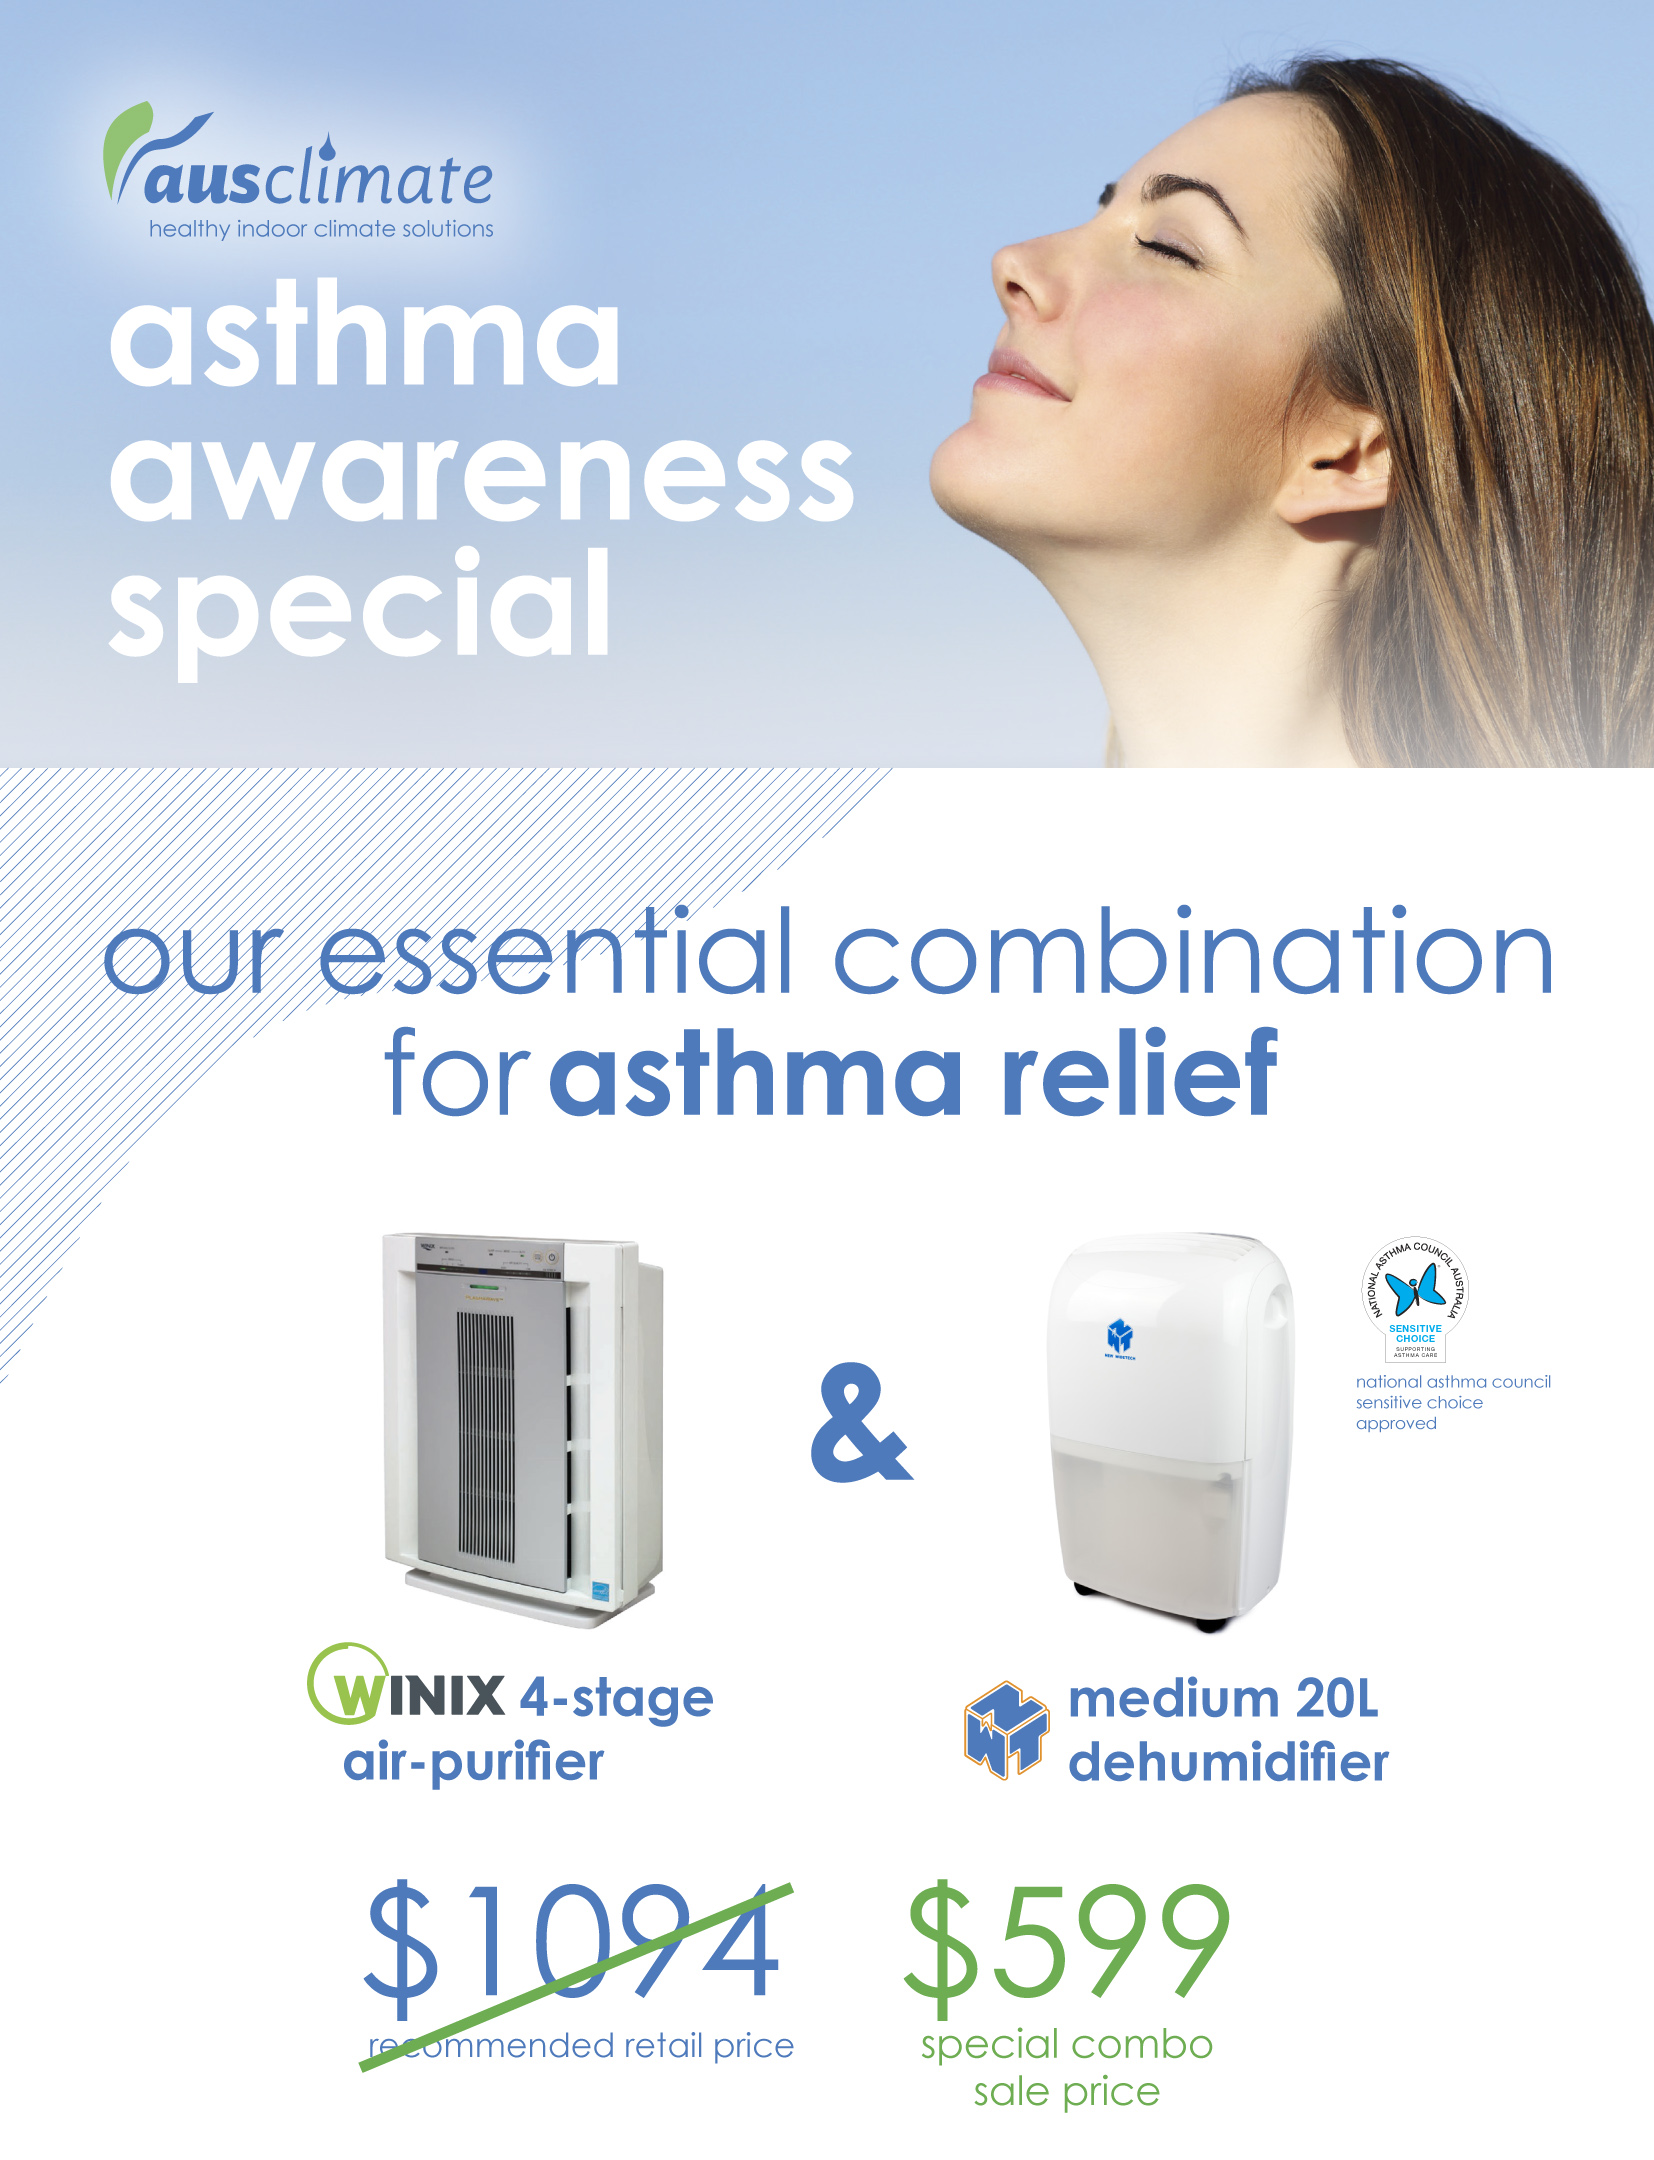 Ausclimate Asthma Awareness Special A4